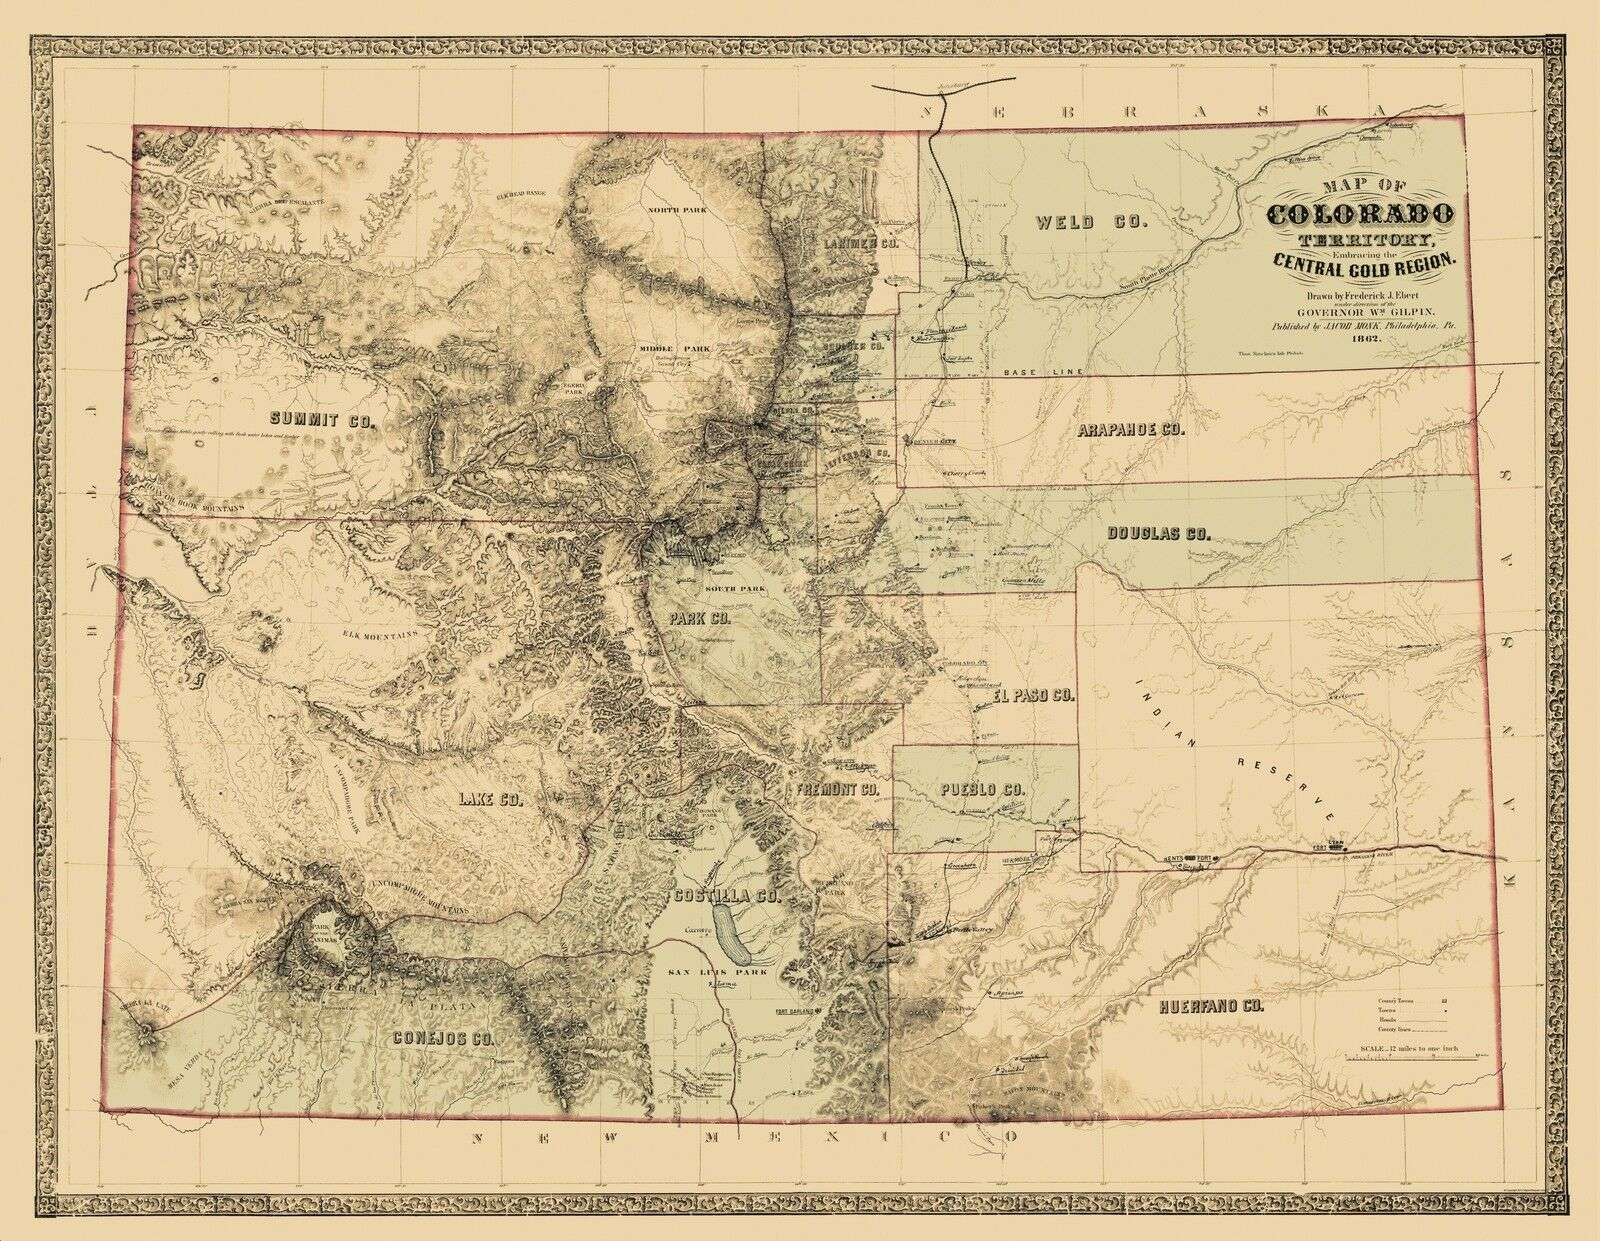 Old State Map  Colorado Territory Gold Region  1862